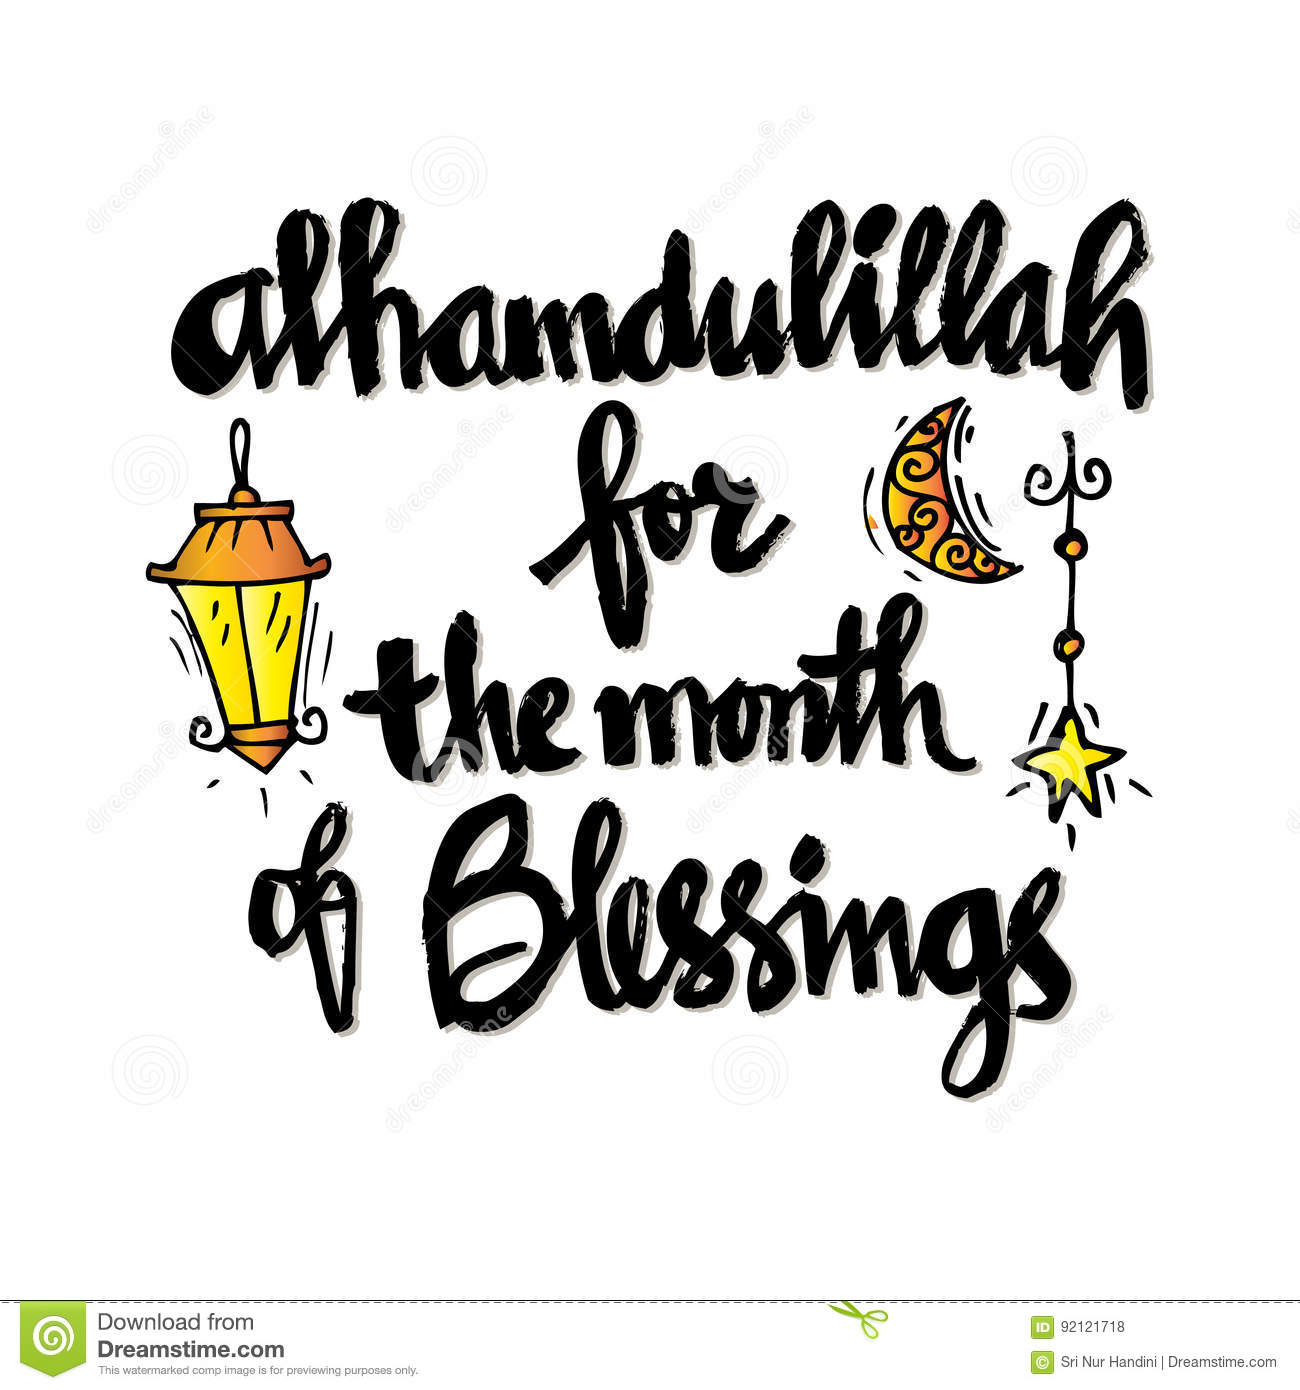 Alhamdulillah for the month of blessing stock illustration download alhamdulillah for the month of blessing stock illustration illustration of arabic muslim altavistaventures Gallery